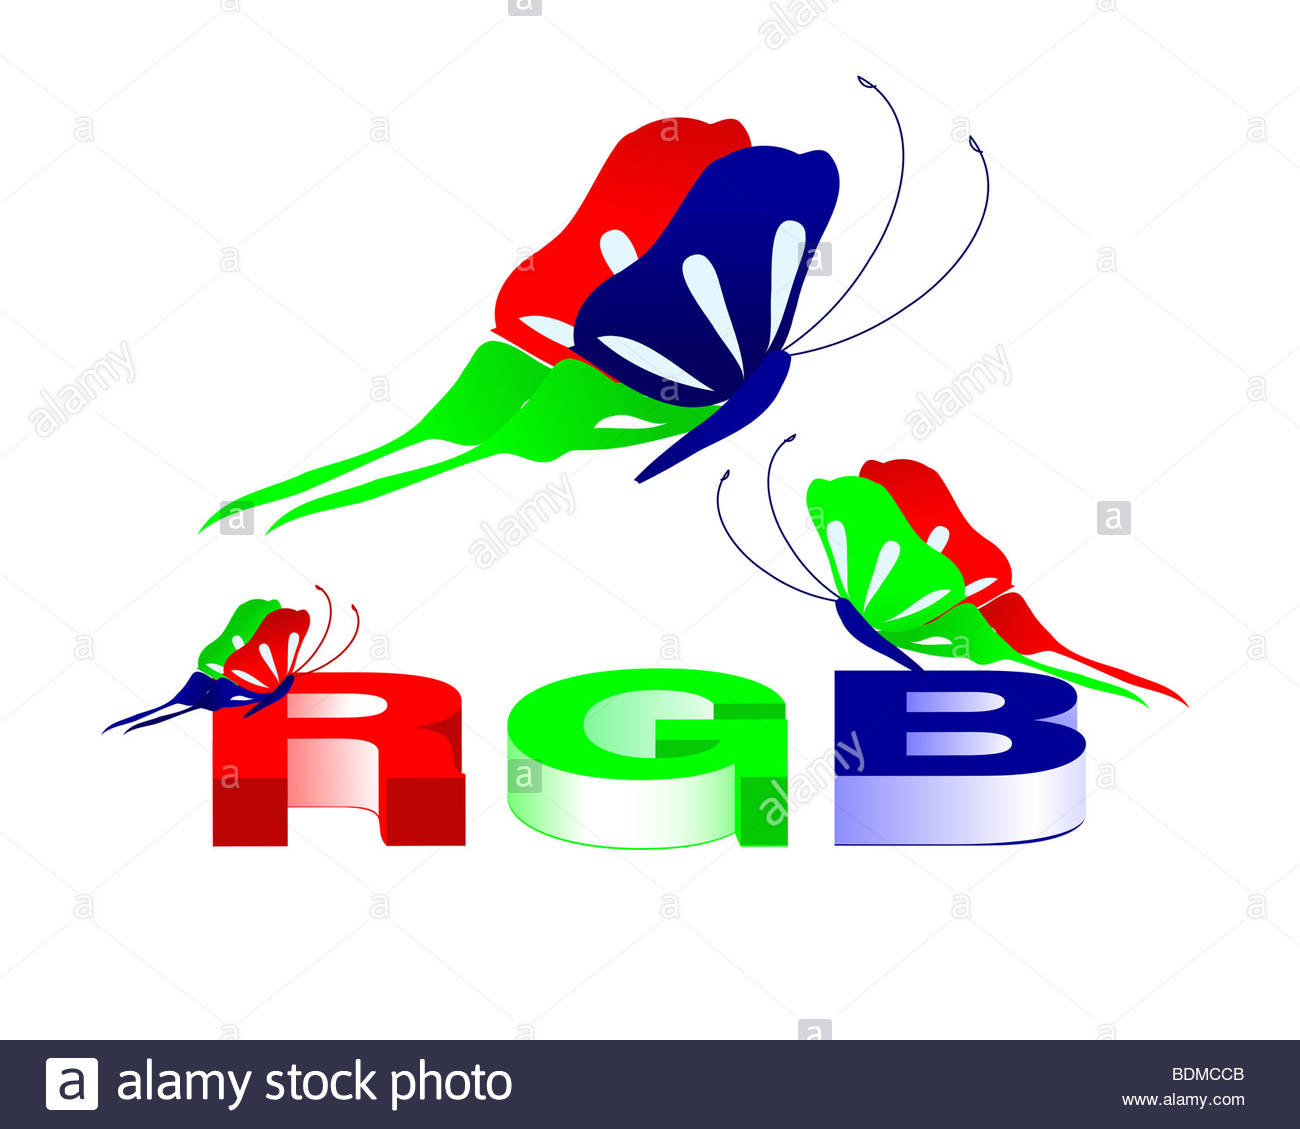 What Are Basic Colors creative way to describe the basic colors stock photo, royalty